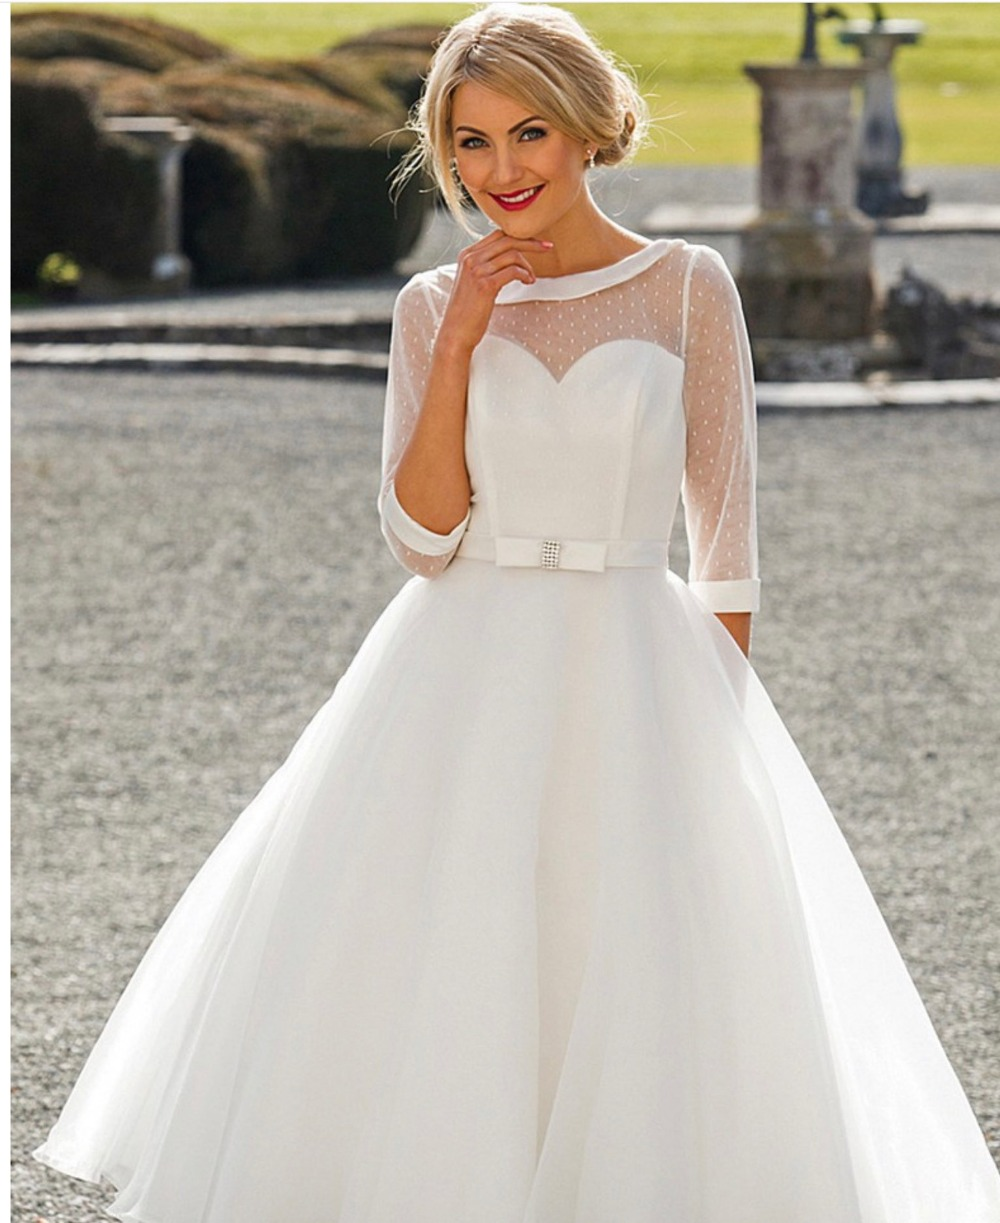 Romantic Half Sleeve Organza Wedding Dresses Tea Length 1905 s Vintage Retro Dotted Short Bridal Gown